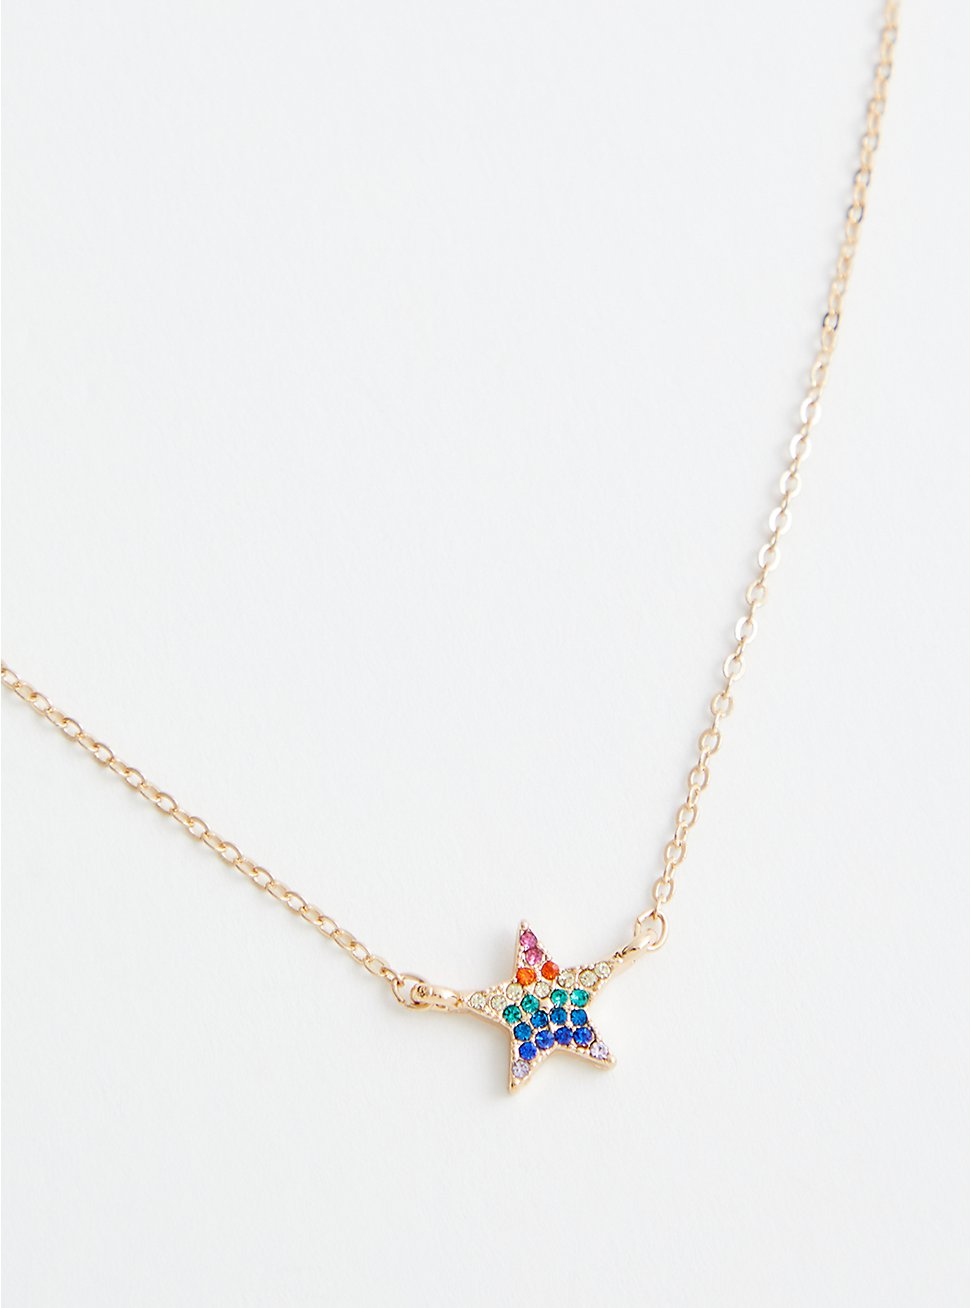 Rainbow Star Delicate Necklace - Gold Tone, , hi-res